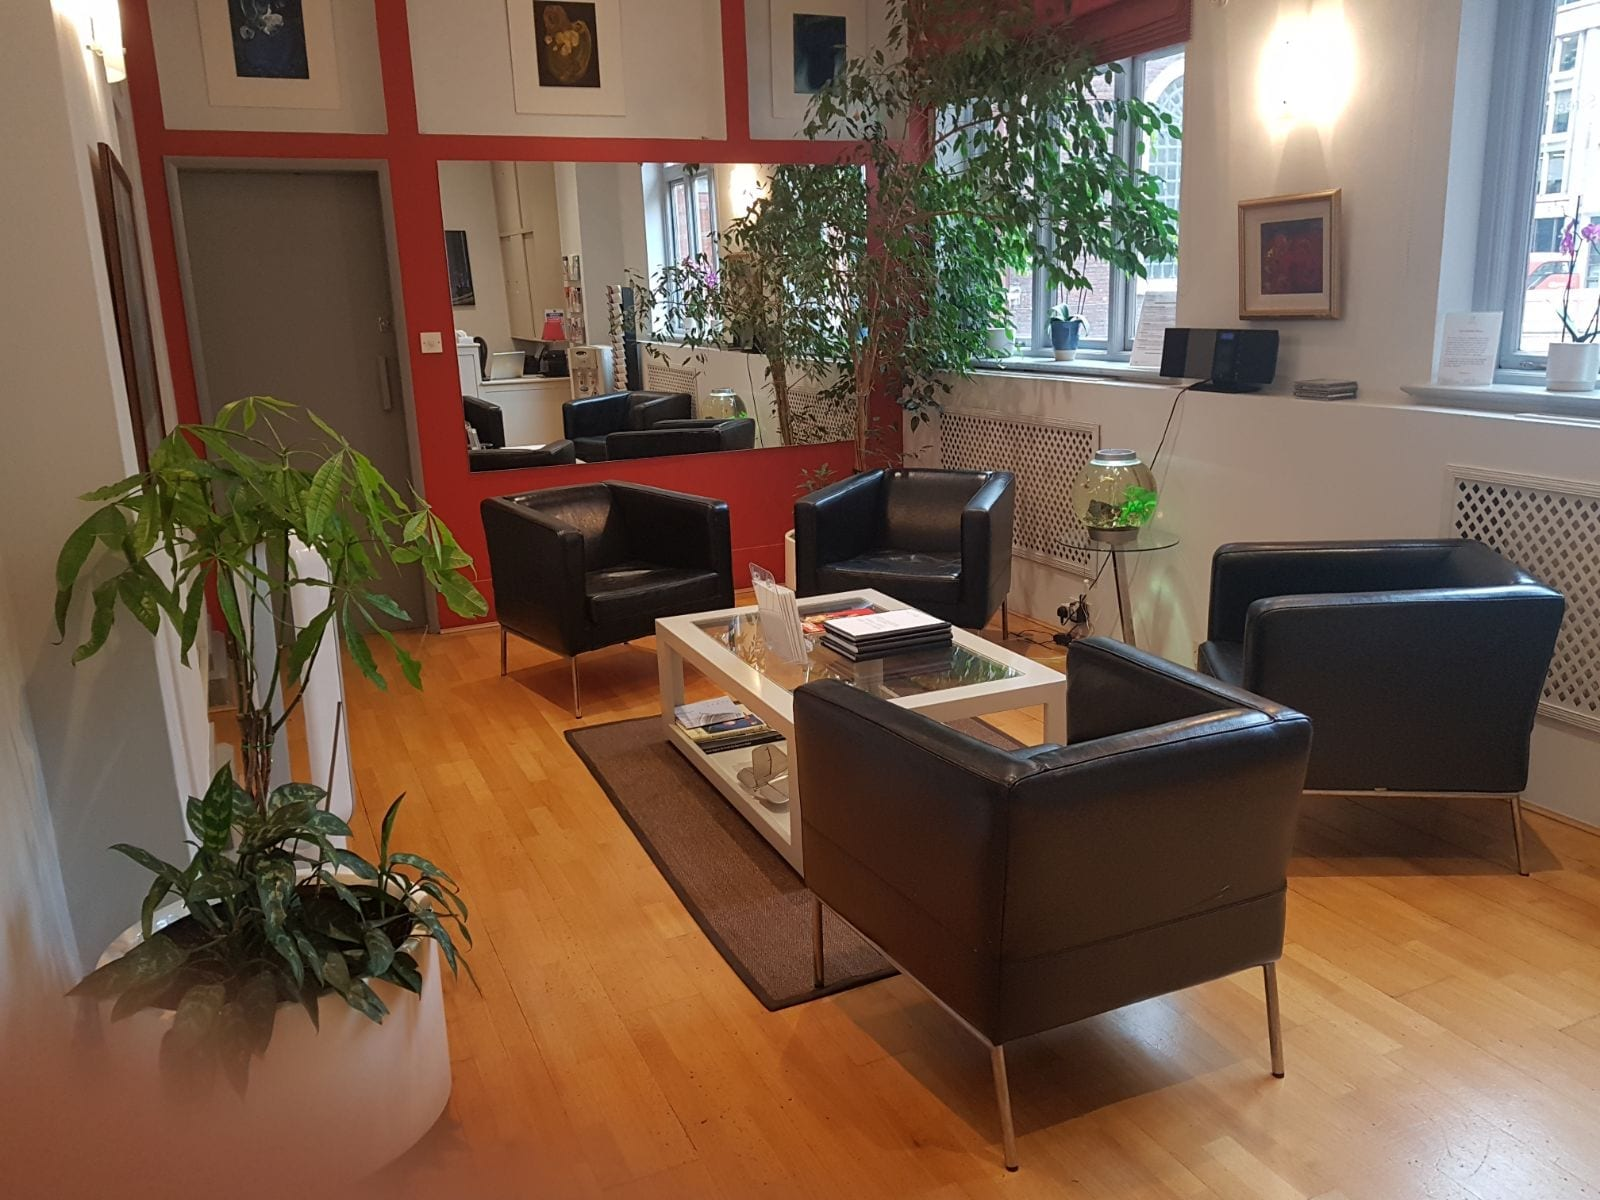 Image of City Skin Clinic in The City of London EC4N5AX